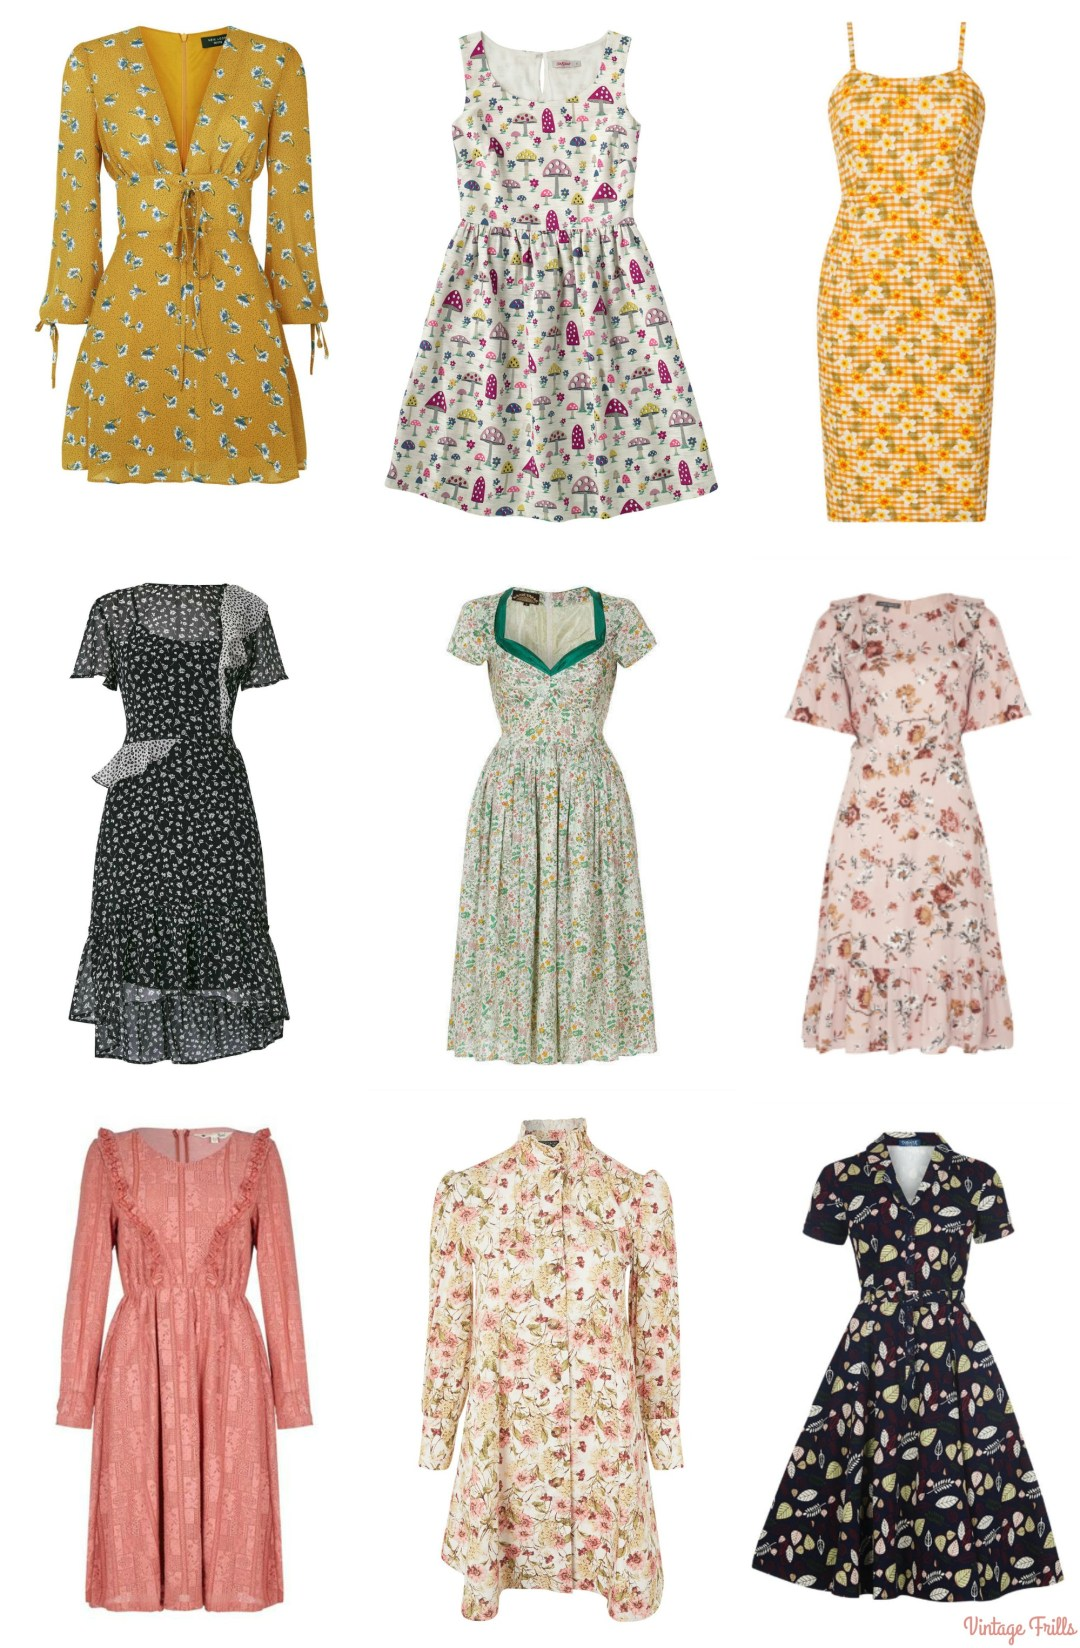 Vintage Style Dresses for Autumn